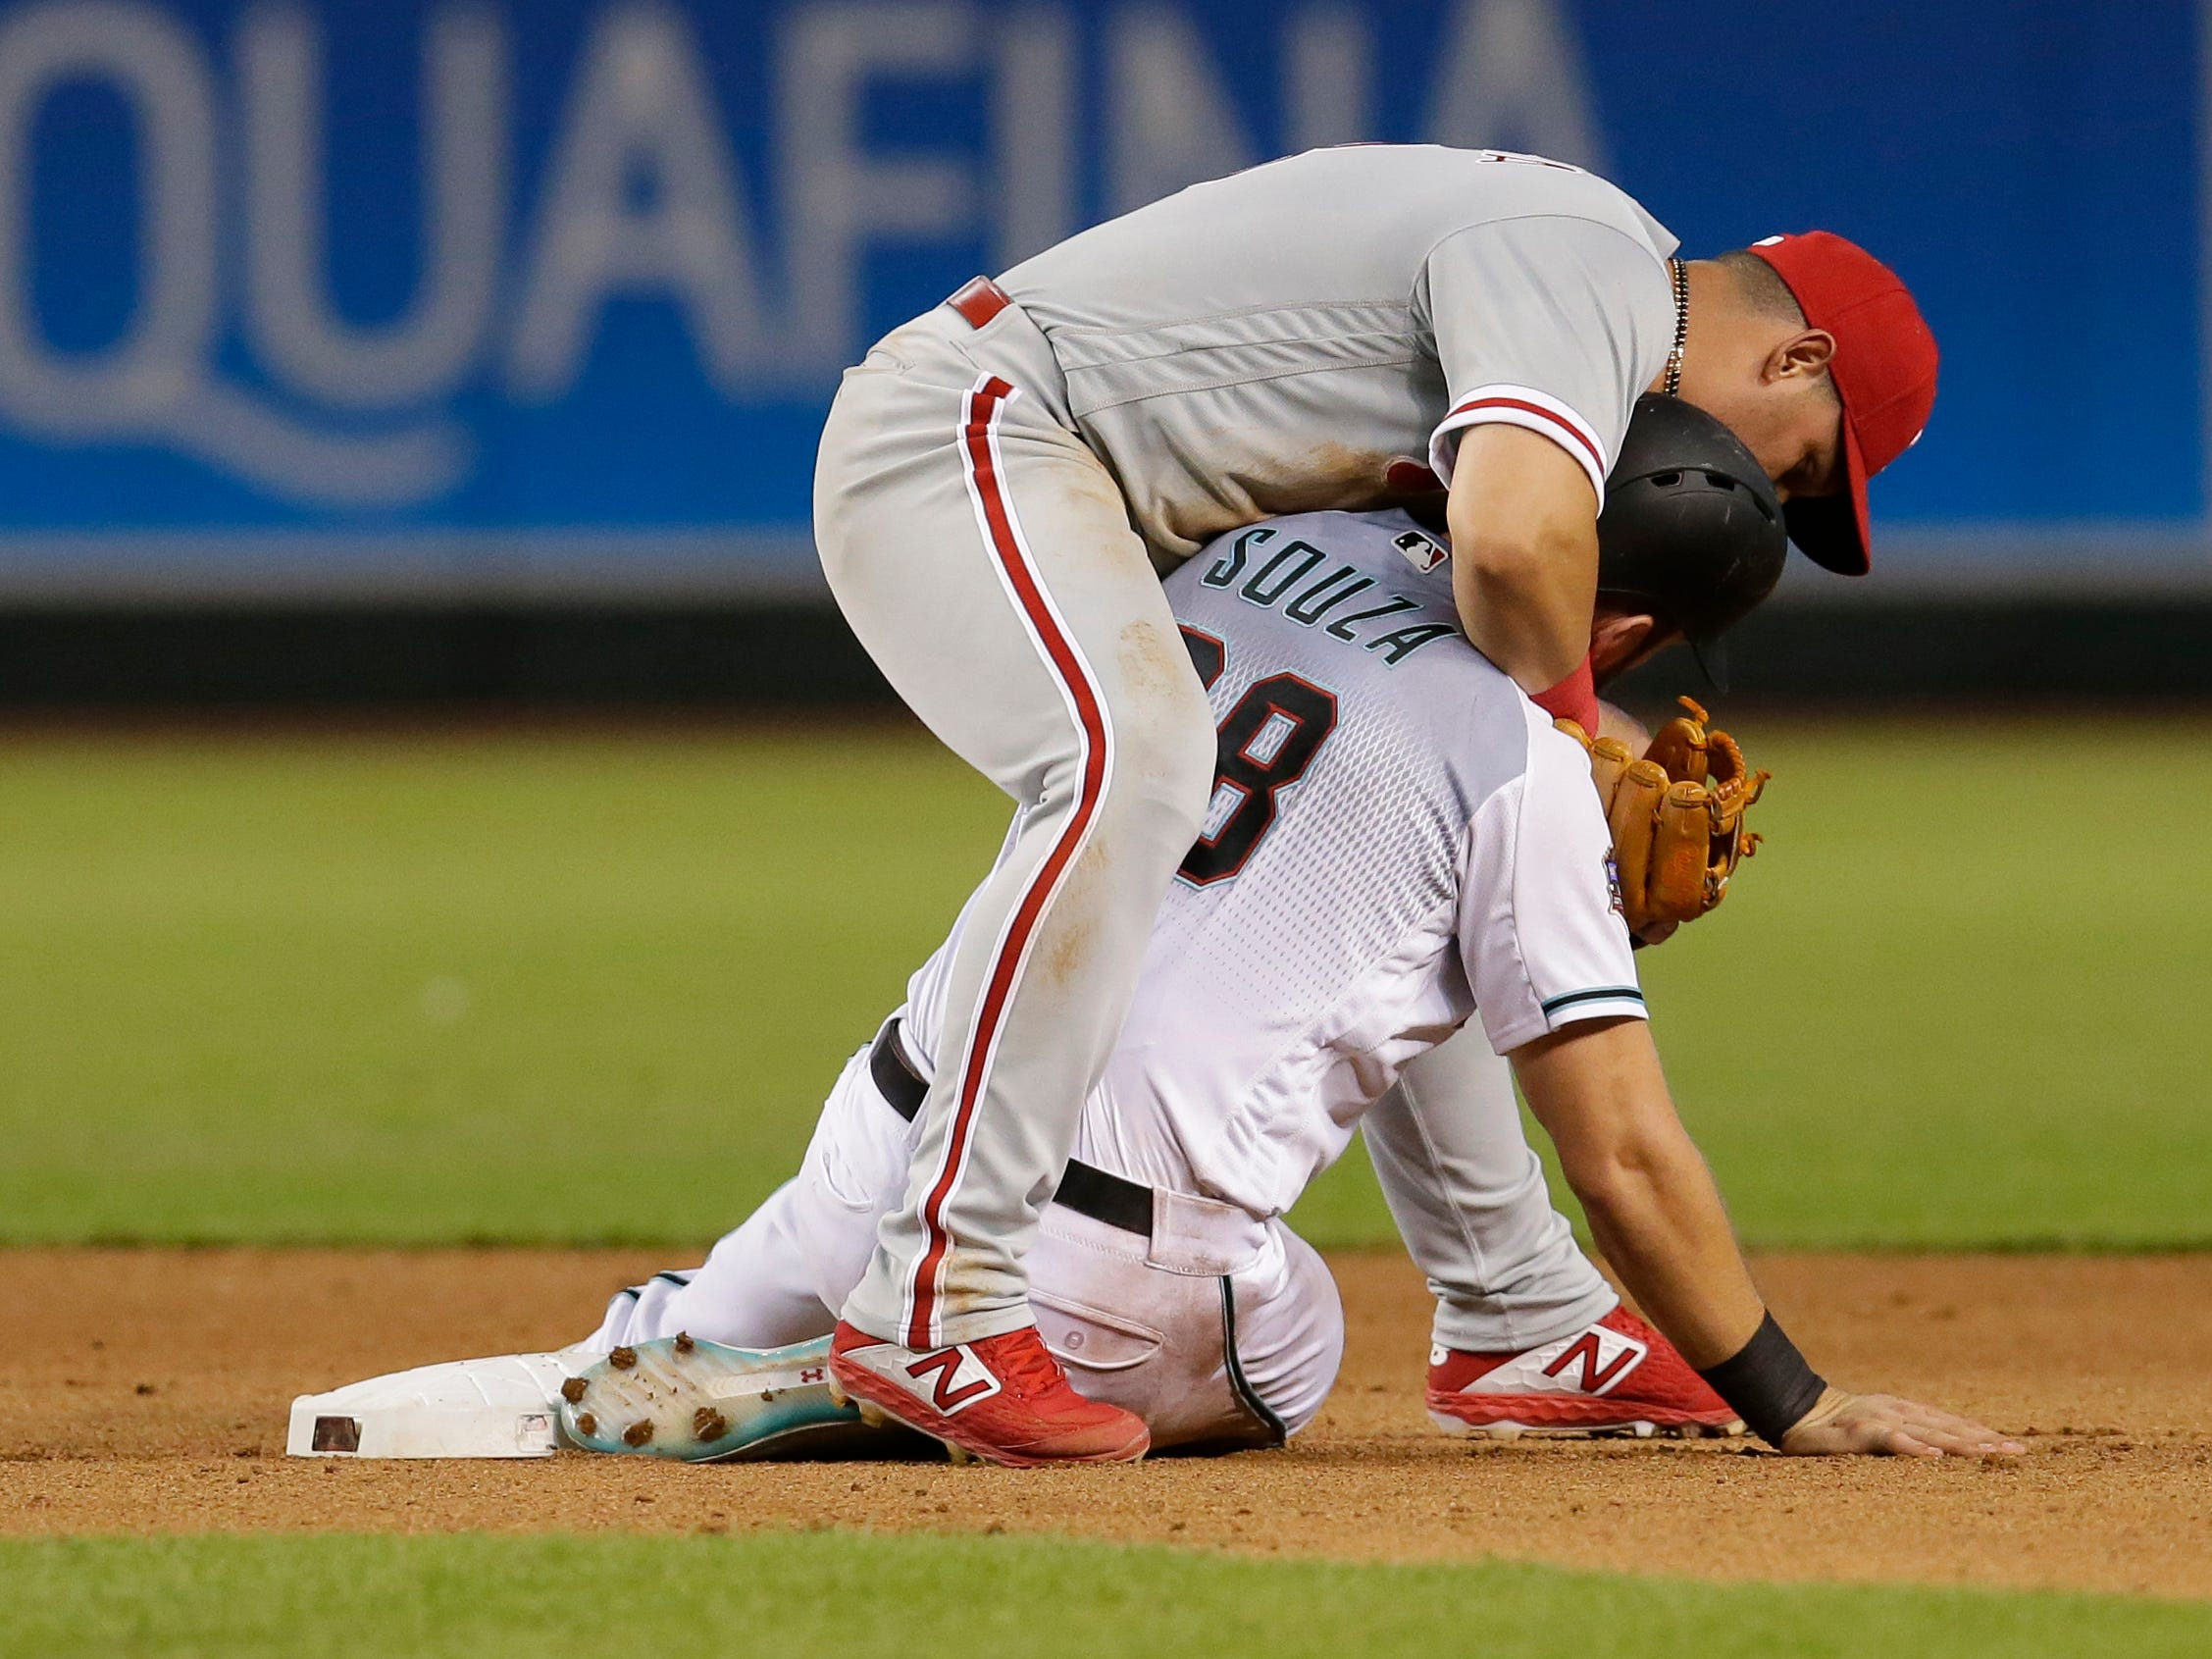 Philadelphia Phillies second baseman Asdrubal Cabrera (13) and Arizona Diamondbacks right fielder Steven Souza Jr. (28) in the eighth inning during a baseball game, Tuesday, Aug. 7, 2018, in Phoenix.